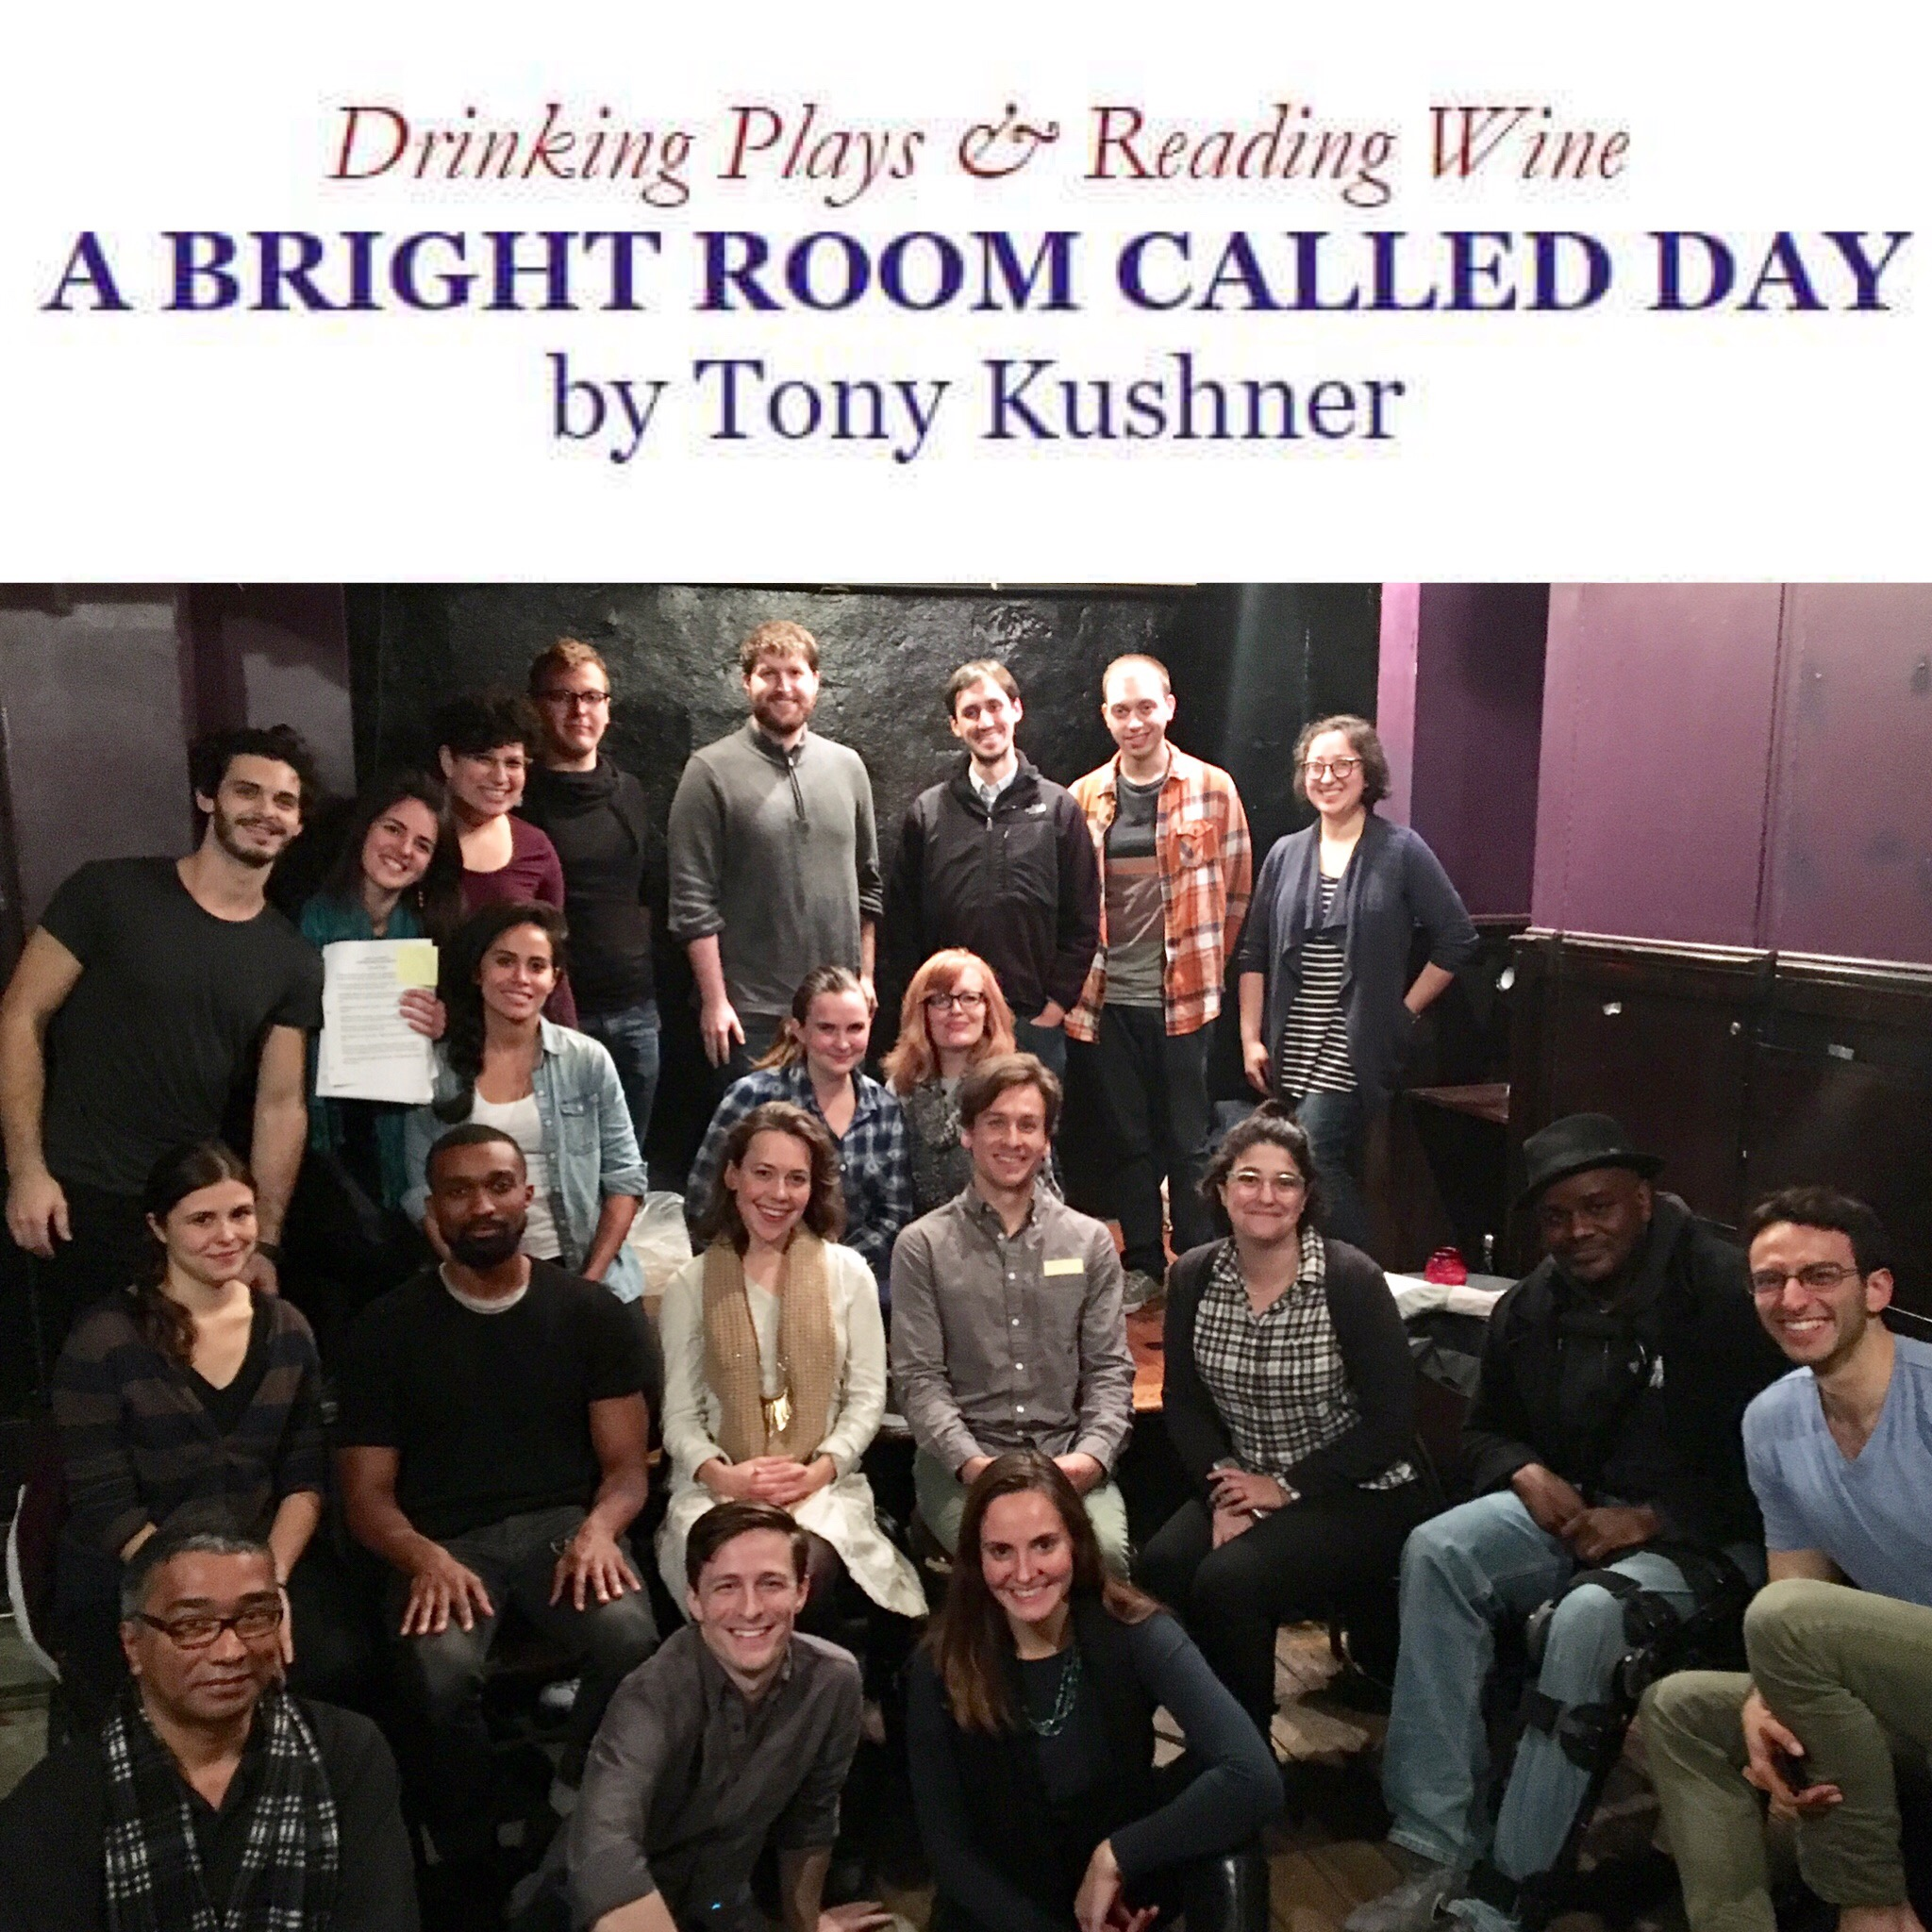 29. A BRIGHT ROOM CALLED DAY by Tony Kushner